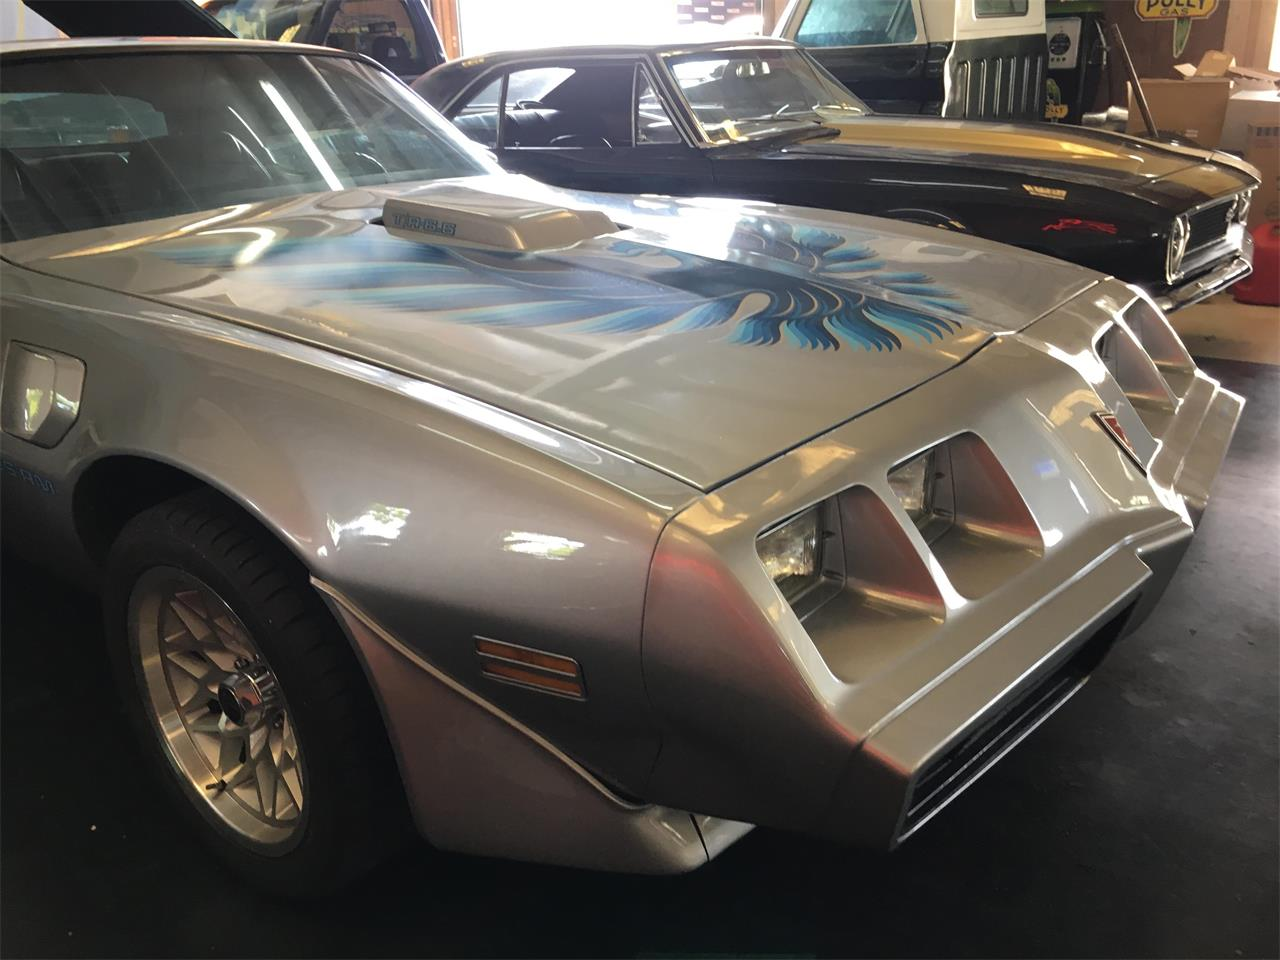 1981 Pontiac Firebird Trans Am for sale in Ponte Verda Beach, FL – photo 22